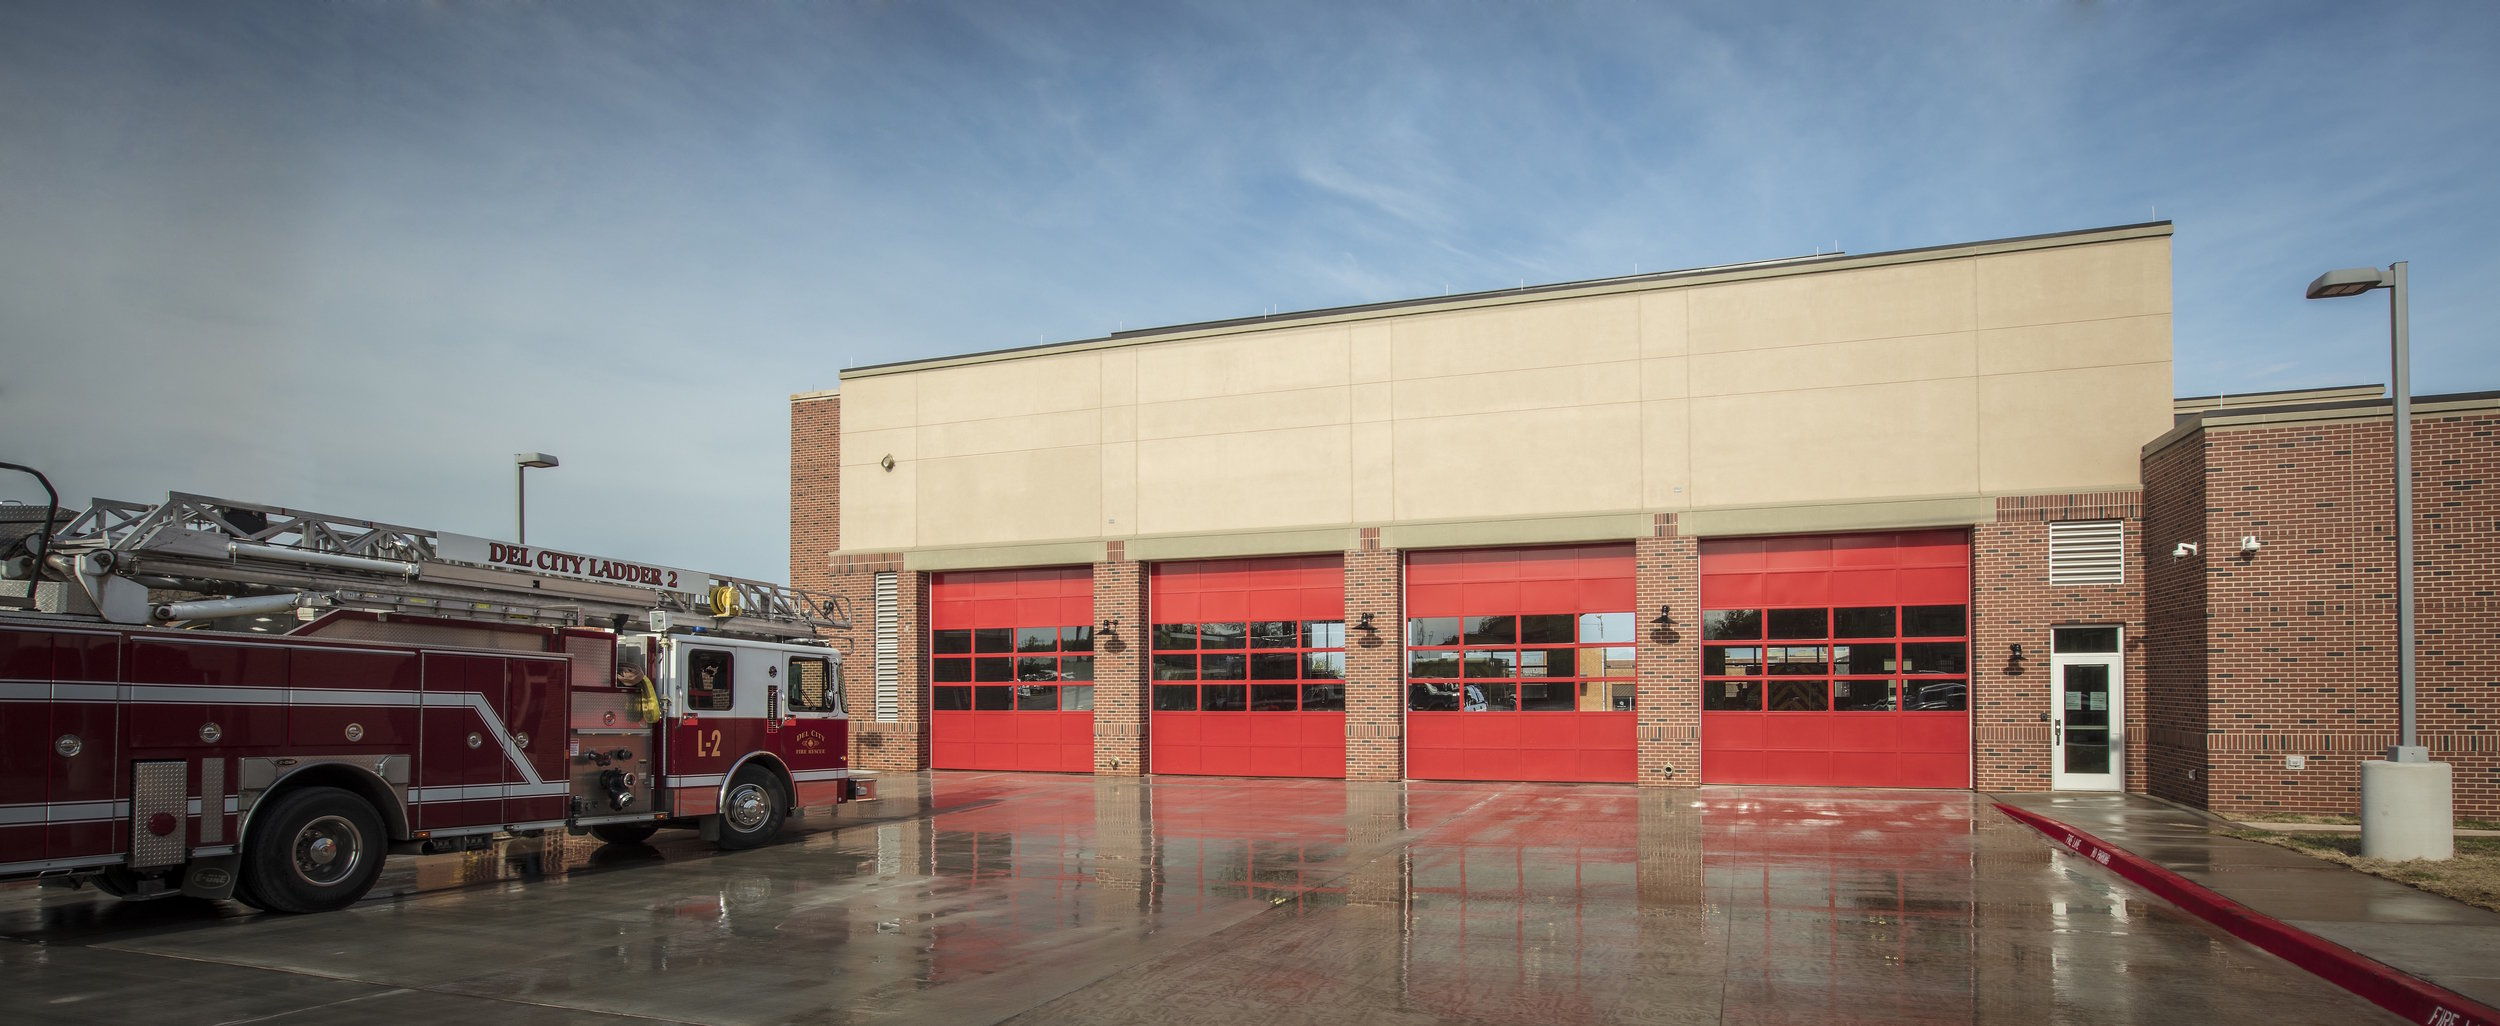 Del City FD1 exterior day with truck.jpg